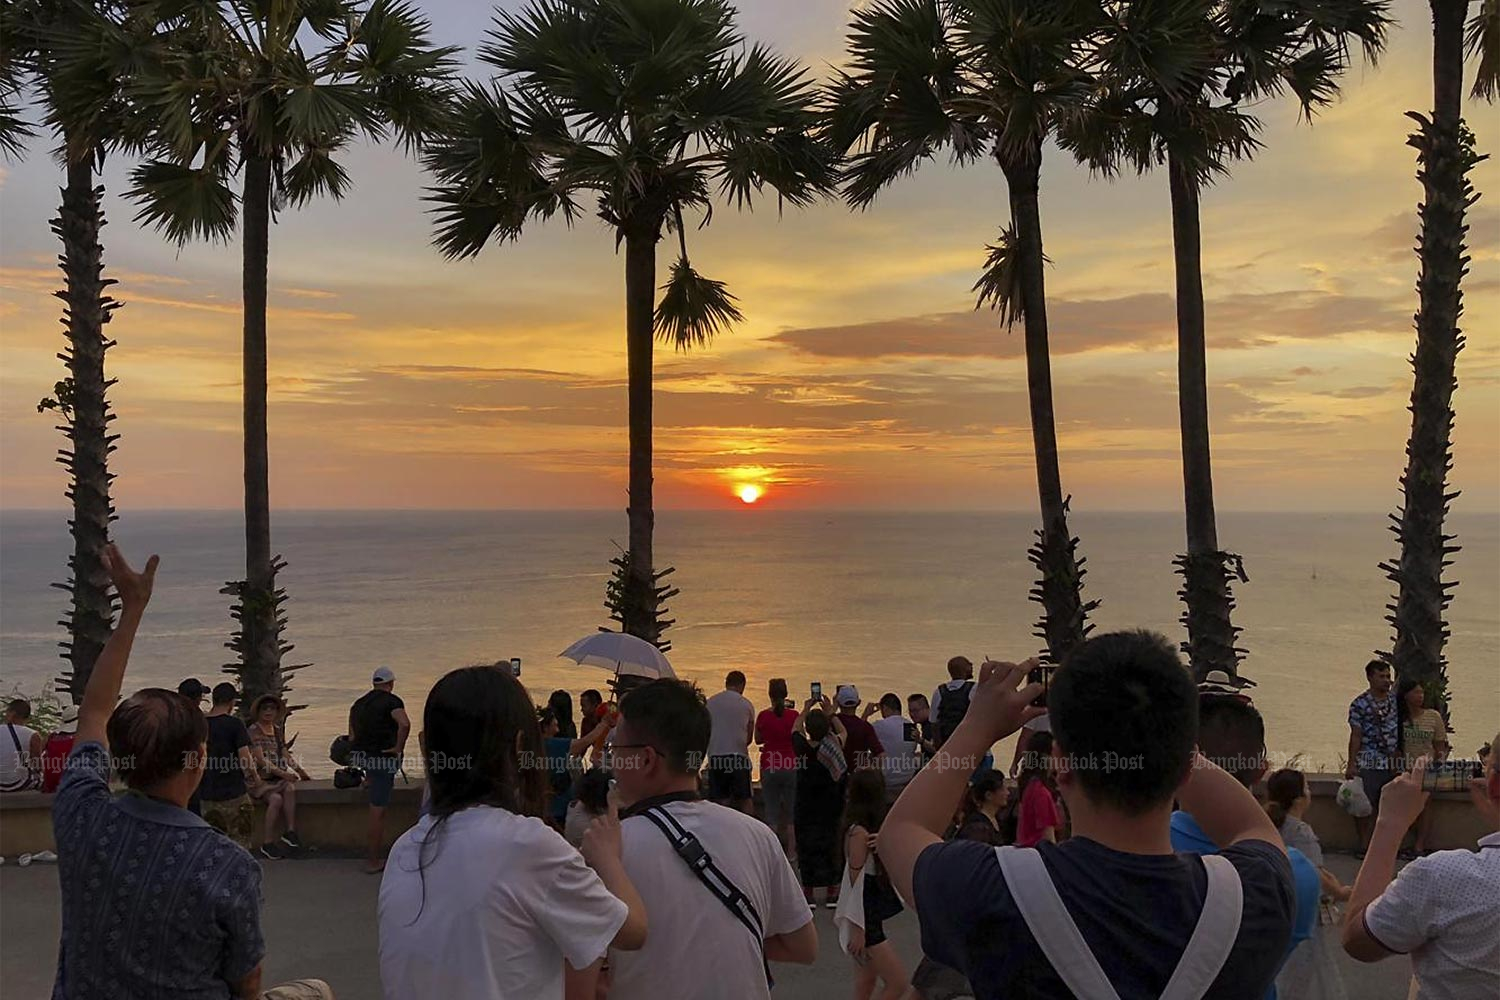 Tourists take sunset pictures at Promthep Cape in Phuket. A new plan aims to draw at least 500,000 tourists to Thailand. (Photo by Sarot Meksophawannakul)